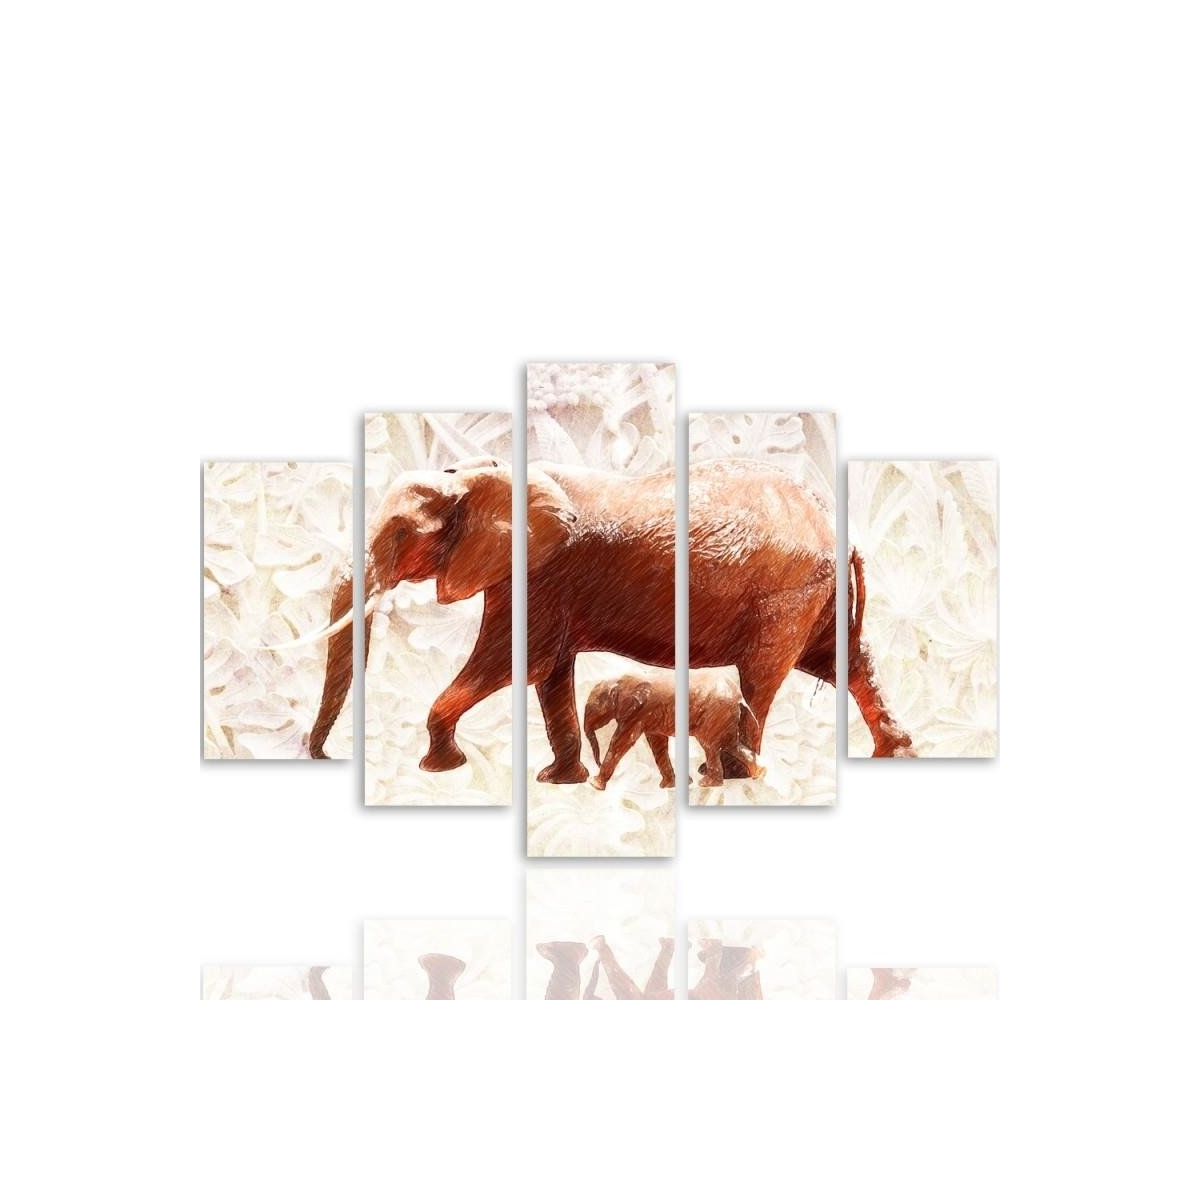 Five Part Picture On Canvas, Pentaptych, Type A, The Elephant With Her Calf 100x150